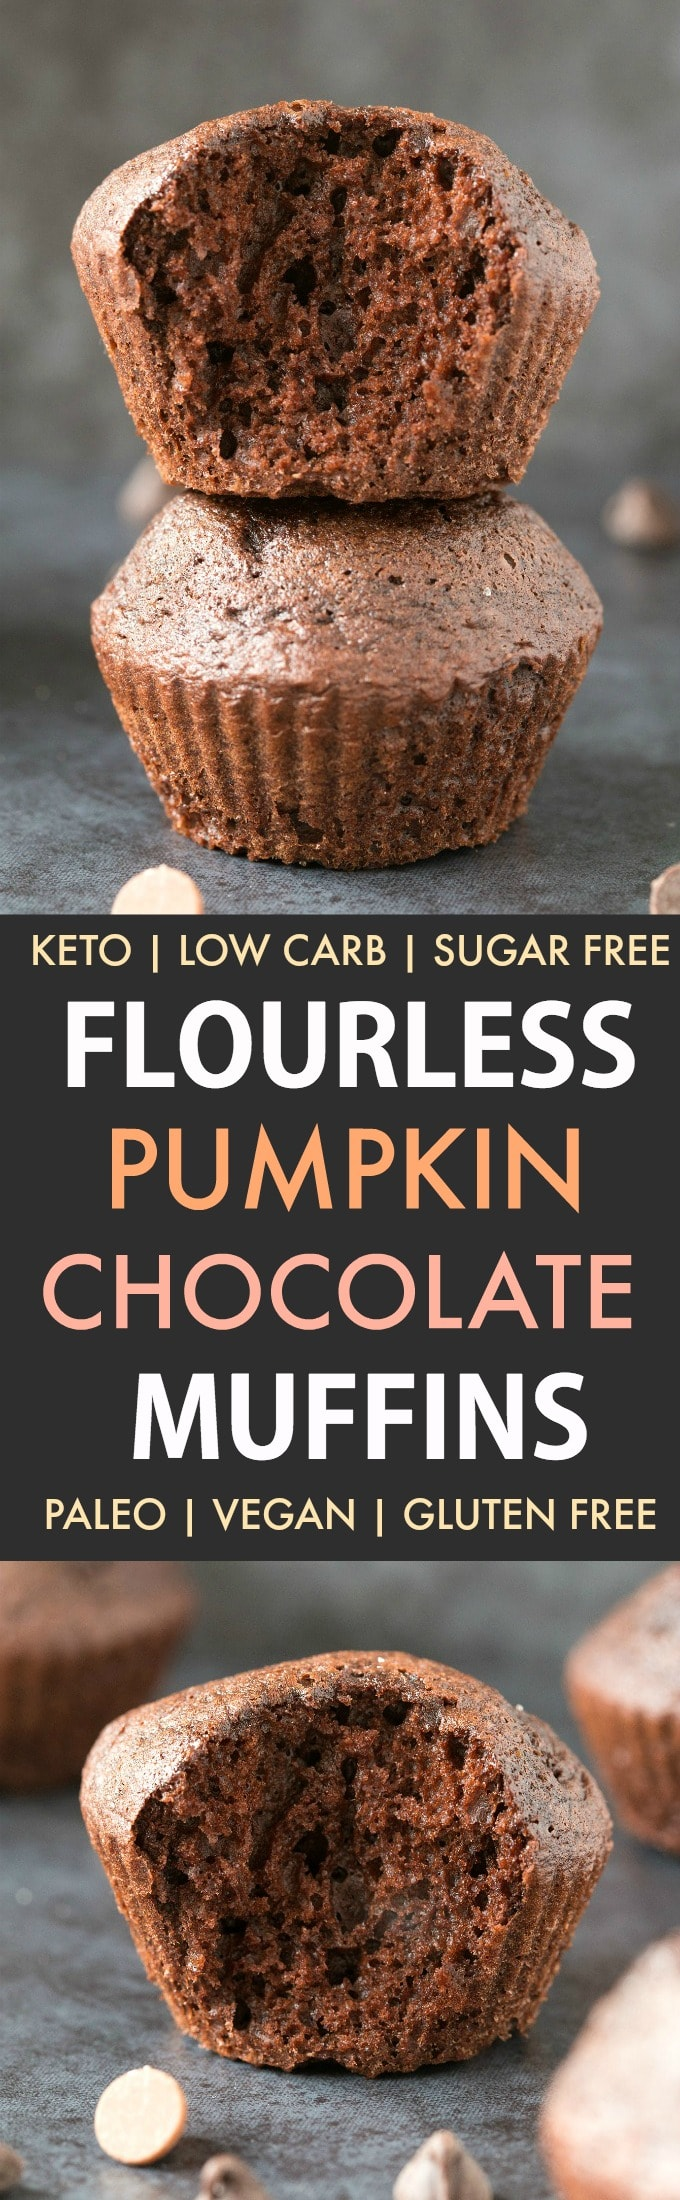 Healthy Flourless Pumpkin Chocolate Muffins (Paleo, Vegan, Keto, Sugar Free)- An easy one-bowl recipe for flourless chocolate muffins with pumpkin- Made with no flour, no oil and no butter, moist and gooey on the inside and tender on the outside! Freezer-friendly too! #flourlessmuffins #lowcarb #ketorecipe #vegan | Recipe on thebigmansworld.com